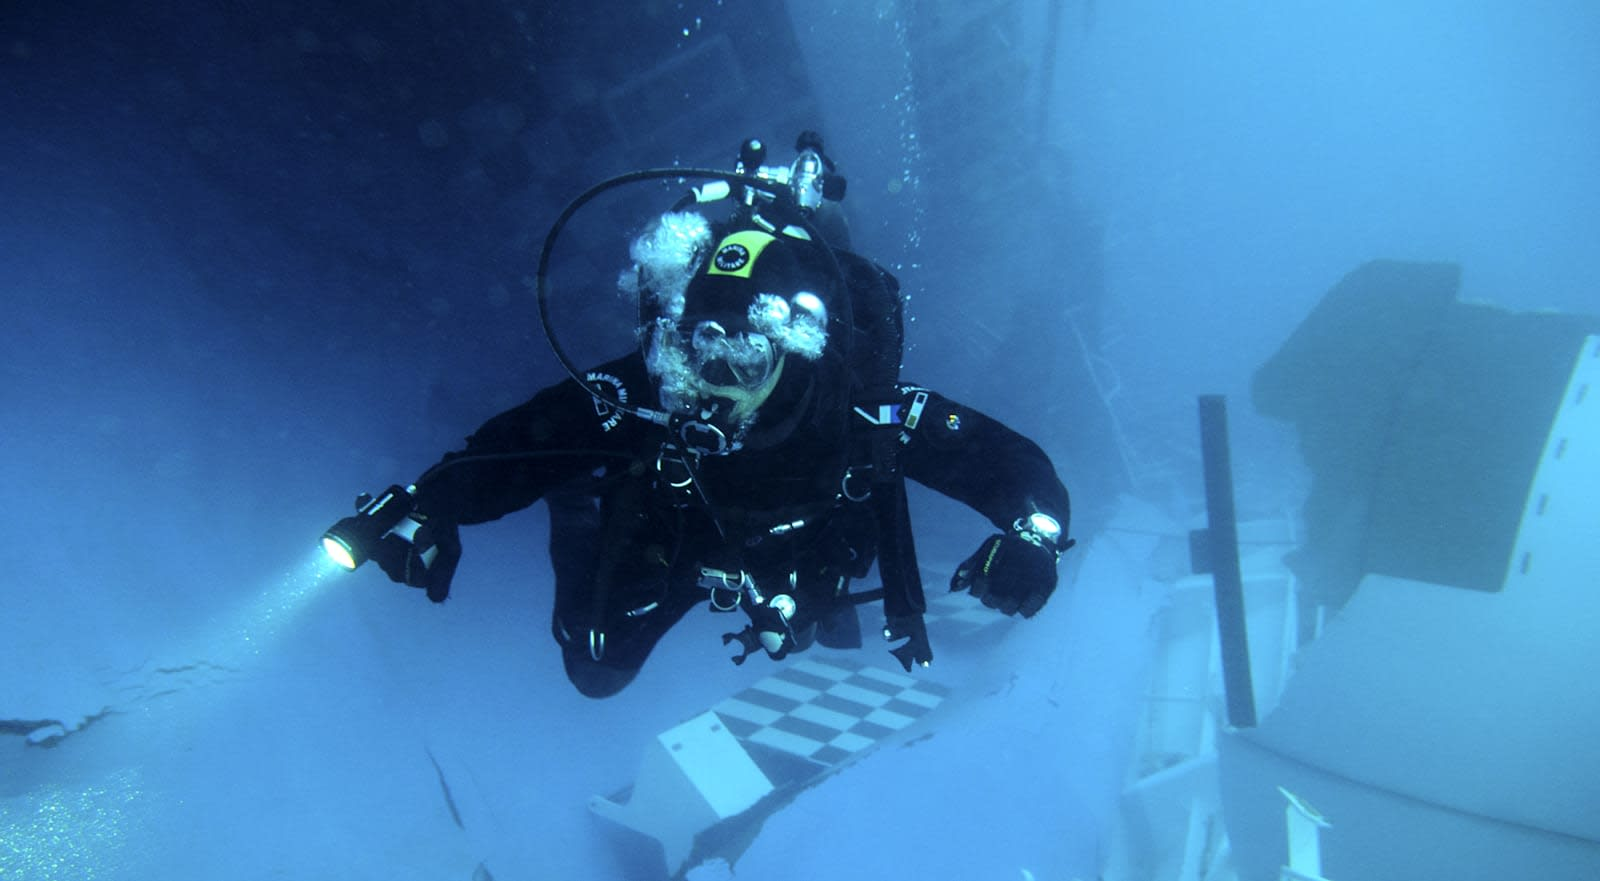 Transmitter tech opens the door to underwater radio